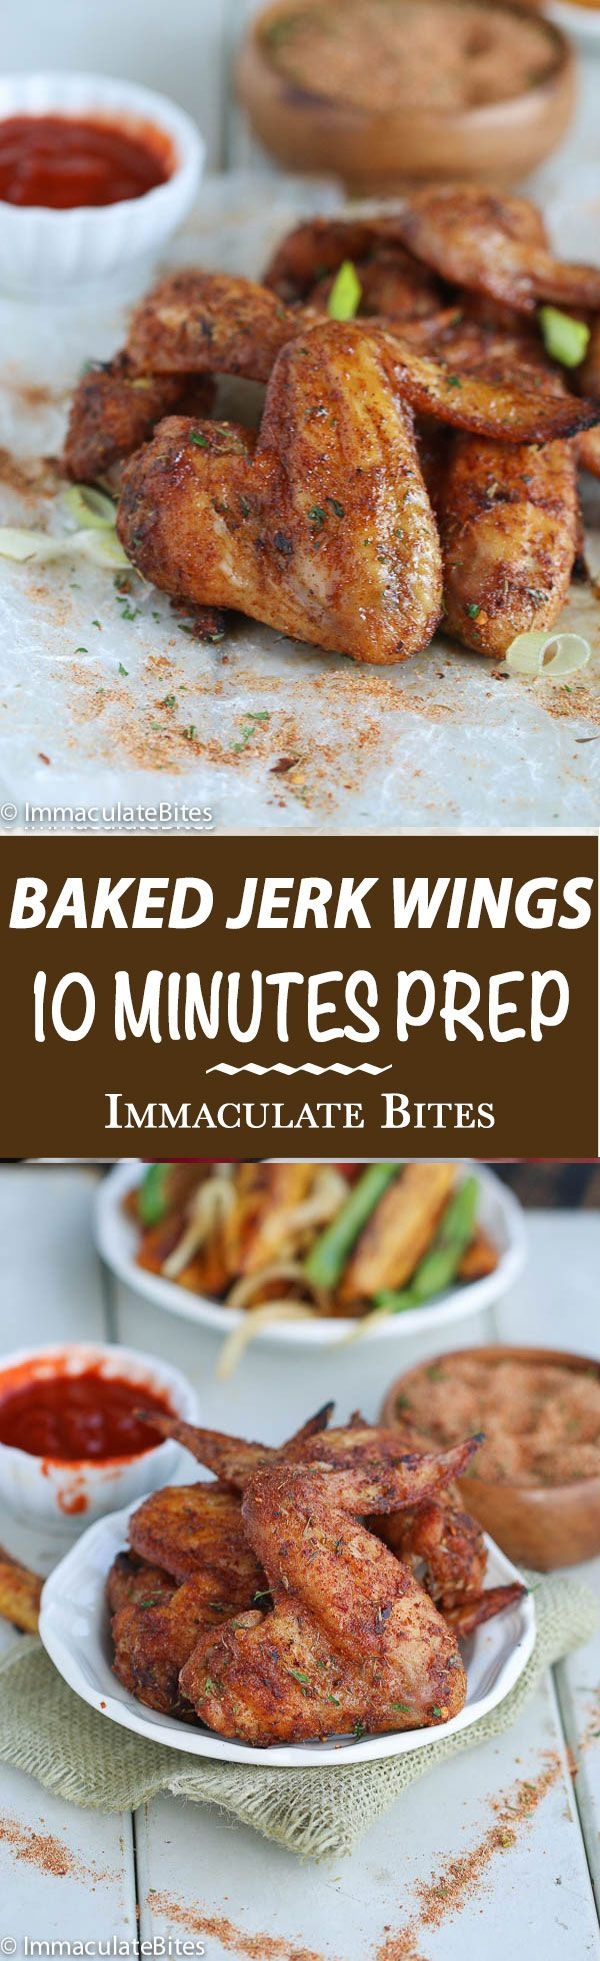 Baked Jerk Chicken Wings- Baked to crispy perfection with all the bold flavors of Jerk Spice rub- 10 minutes prep is all you need!!!